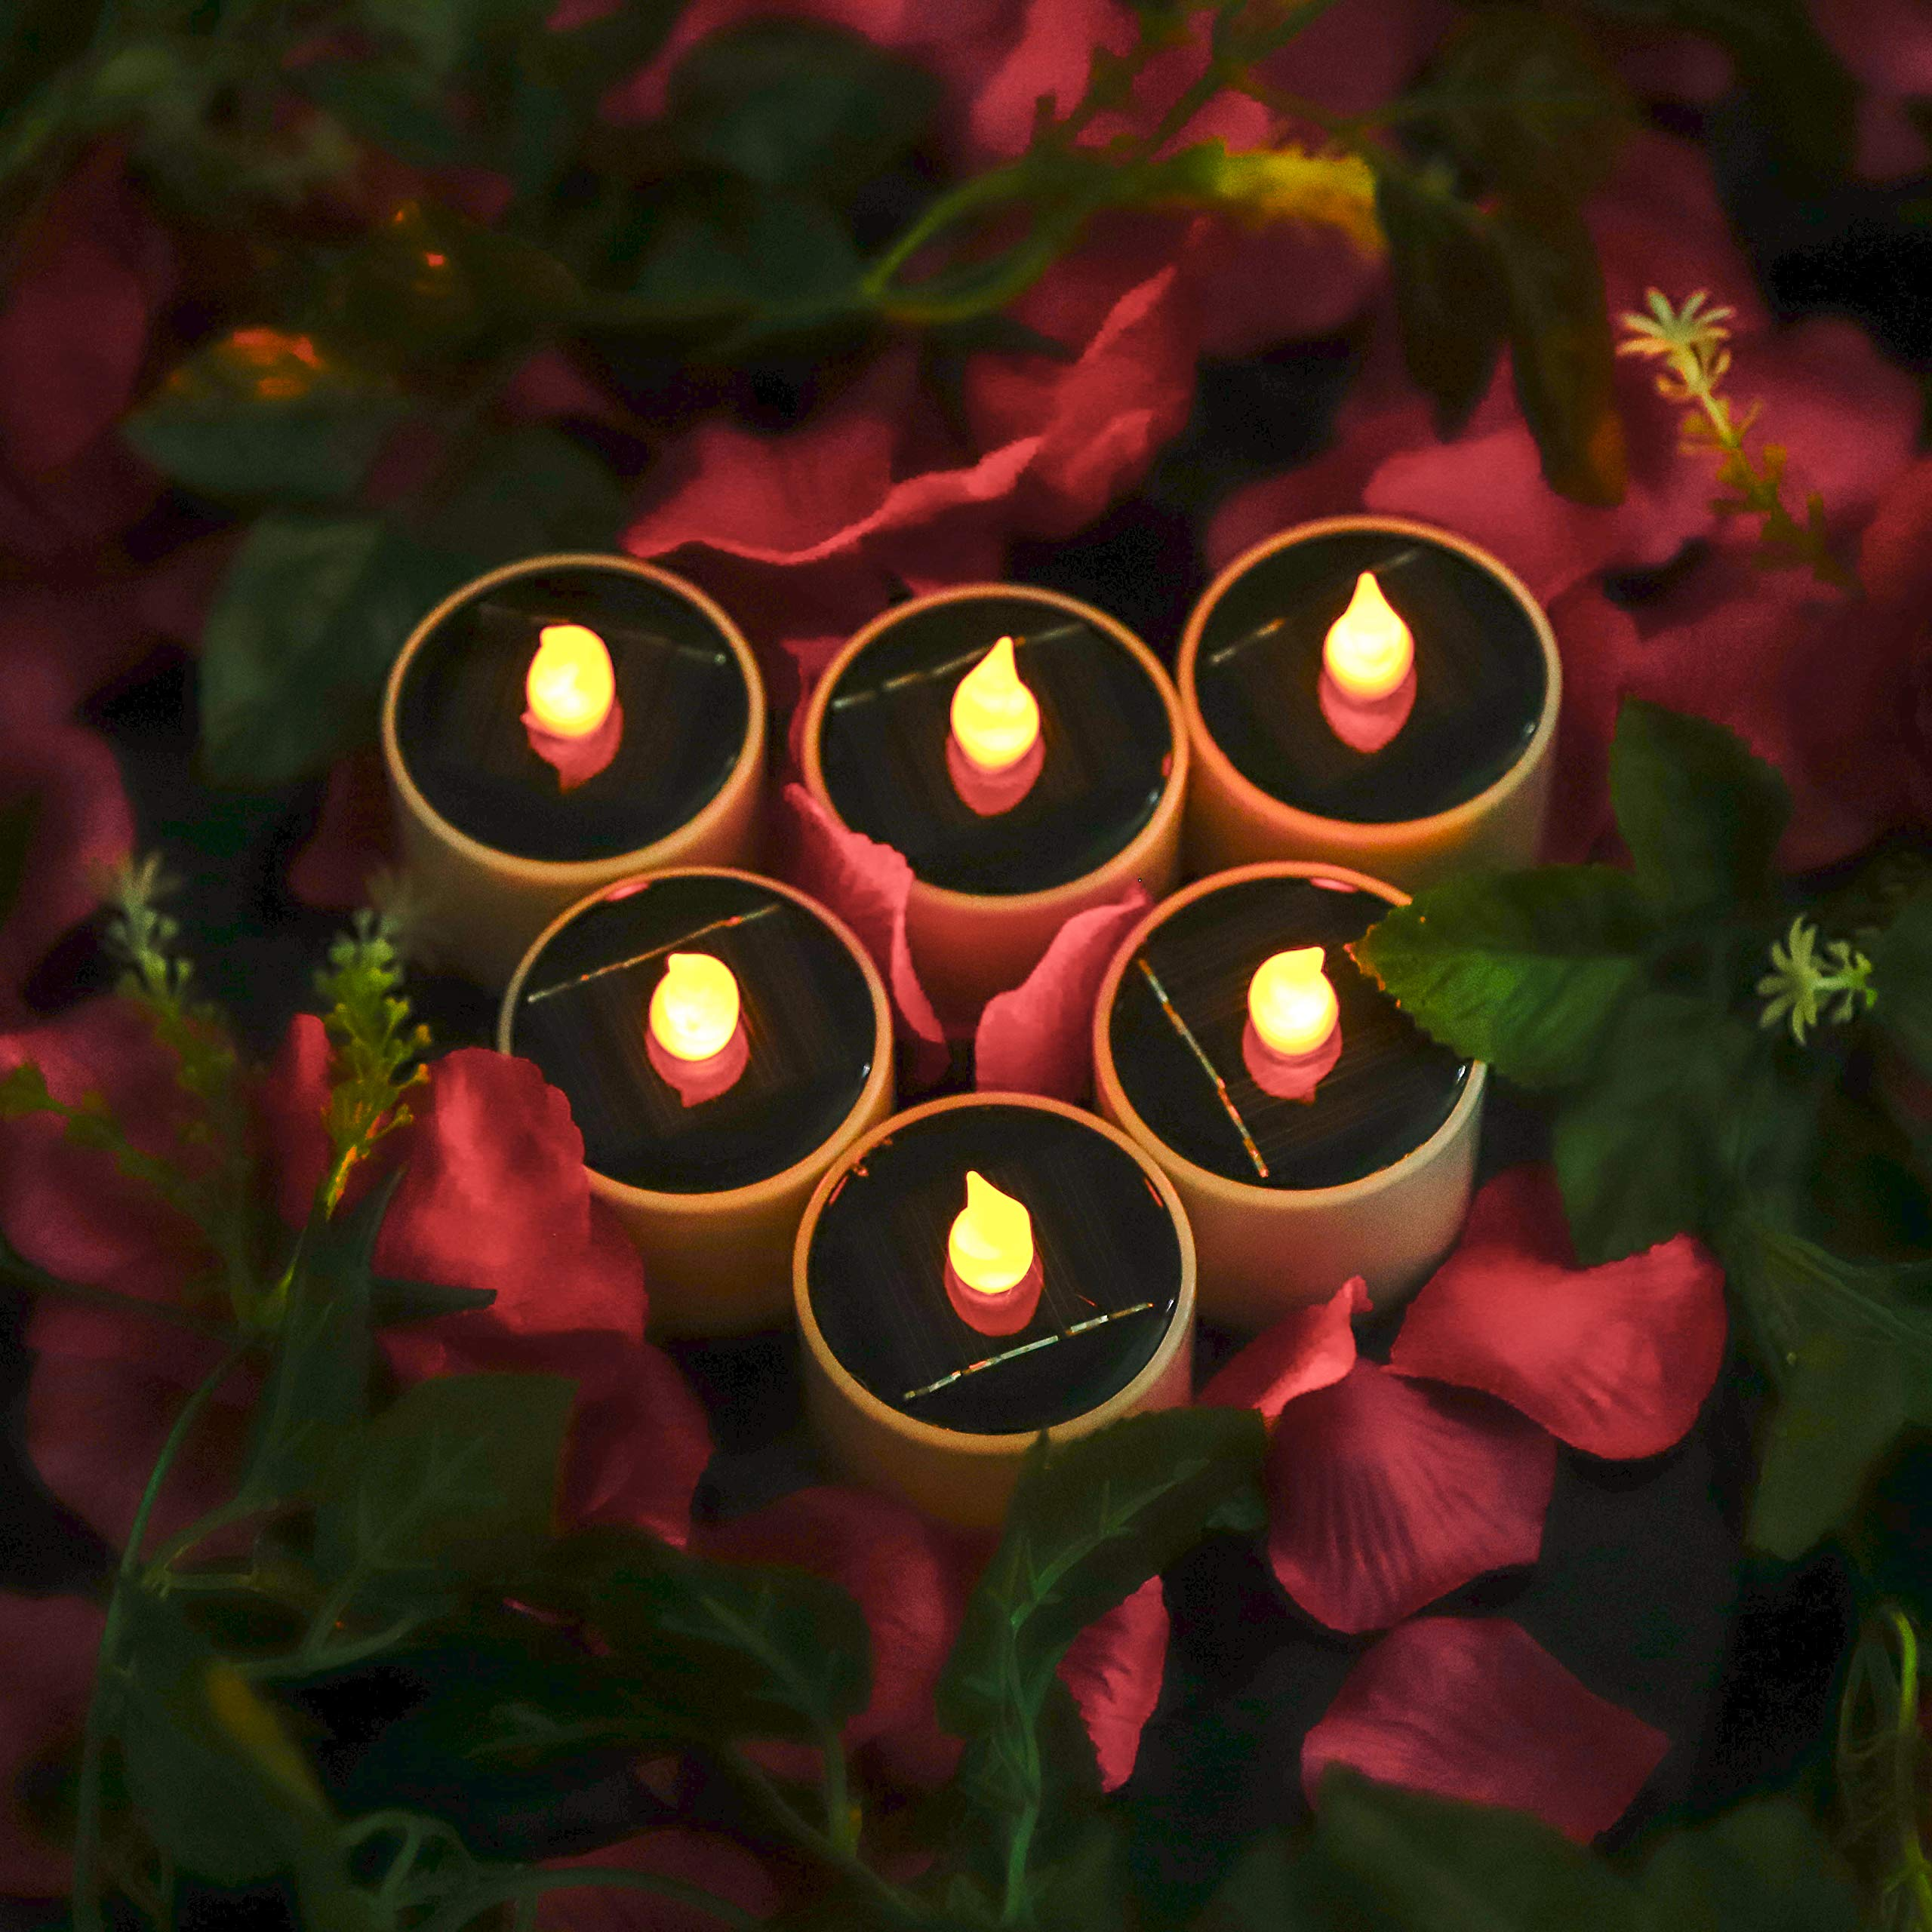 HanSemay Flameless Set of 6 Christmas Candles for home decor birthday, churches, parties and Christmas, Batteries Not Included (6pcs)